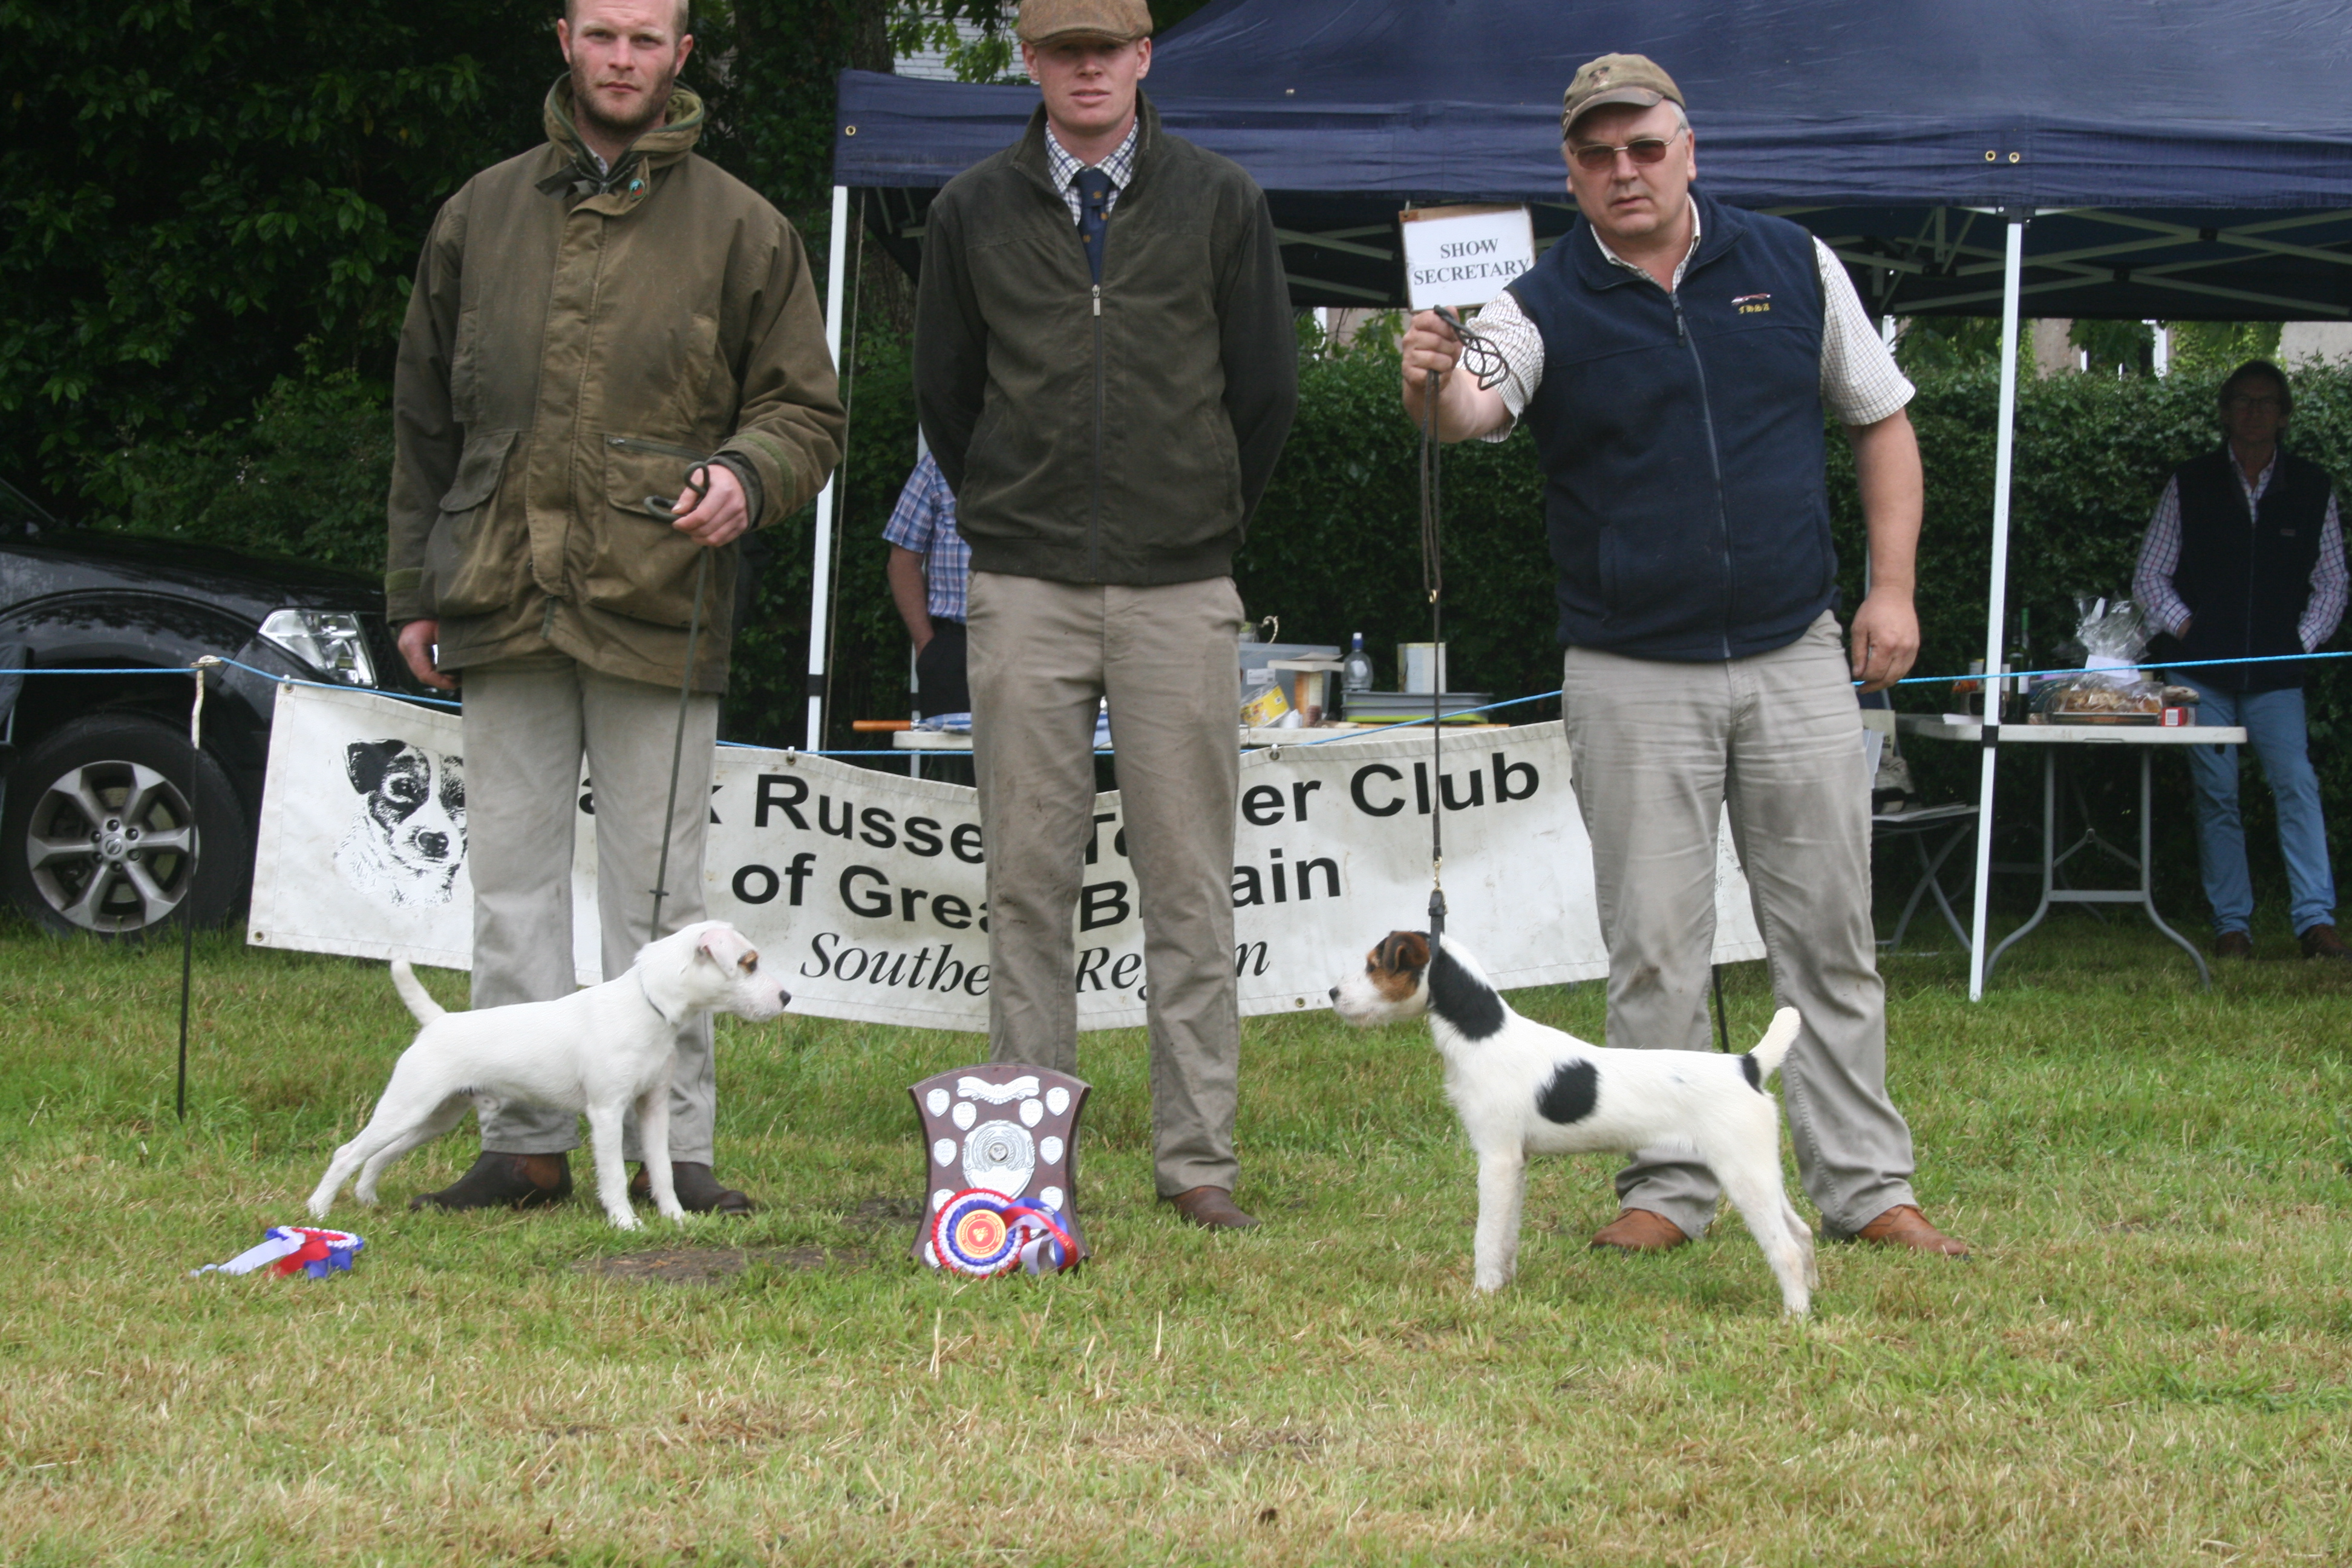 Champion Puppy M Hulme Rushill Pearl (right) judge Lewis Strawbridge Reserve B Turpie Sherdell Nelson II